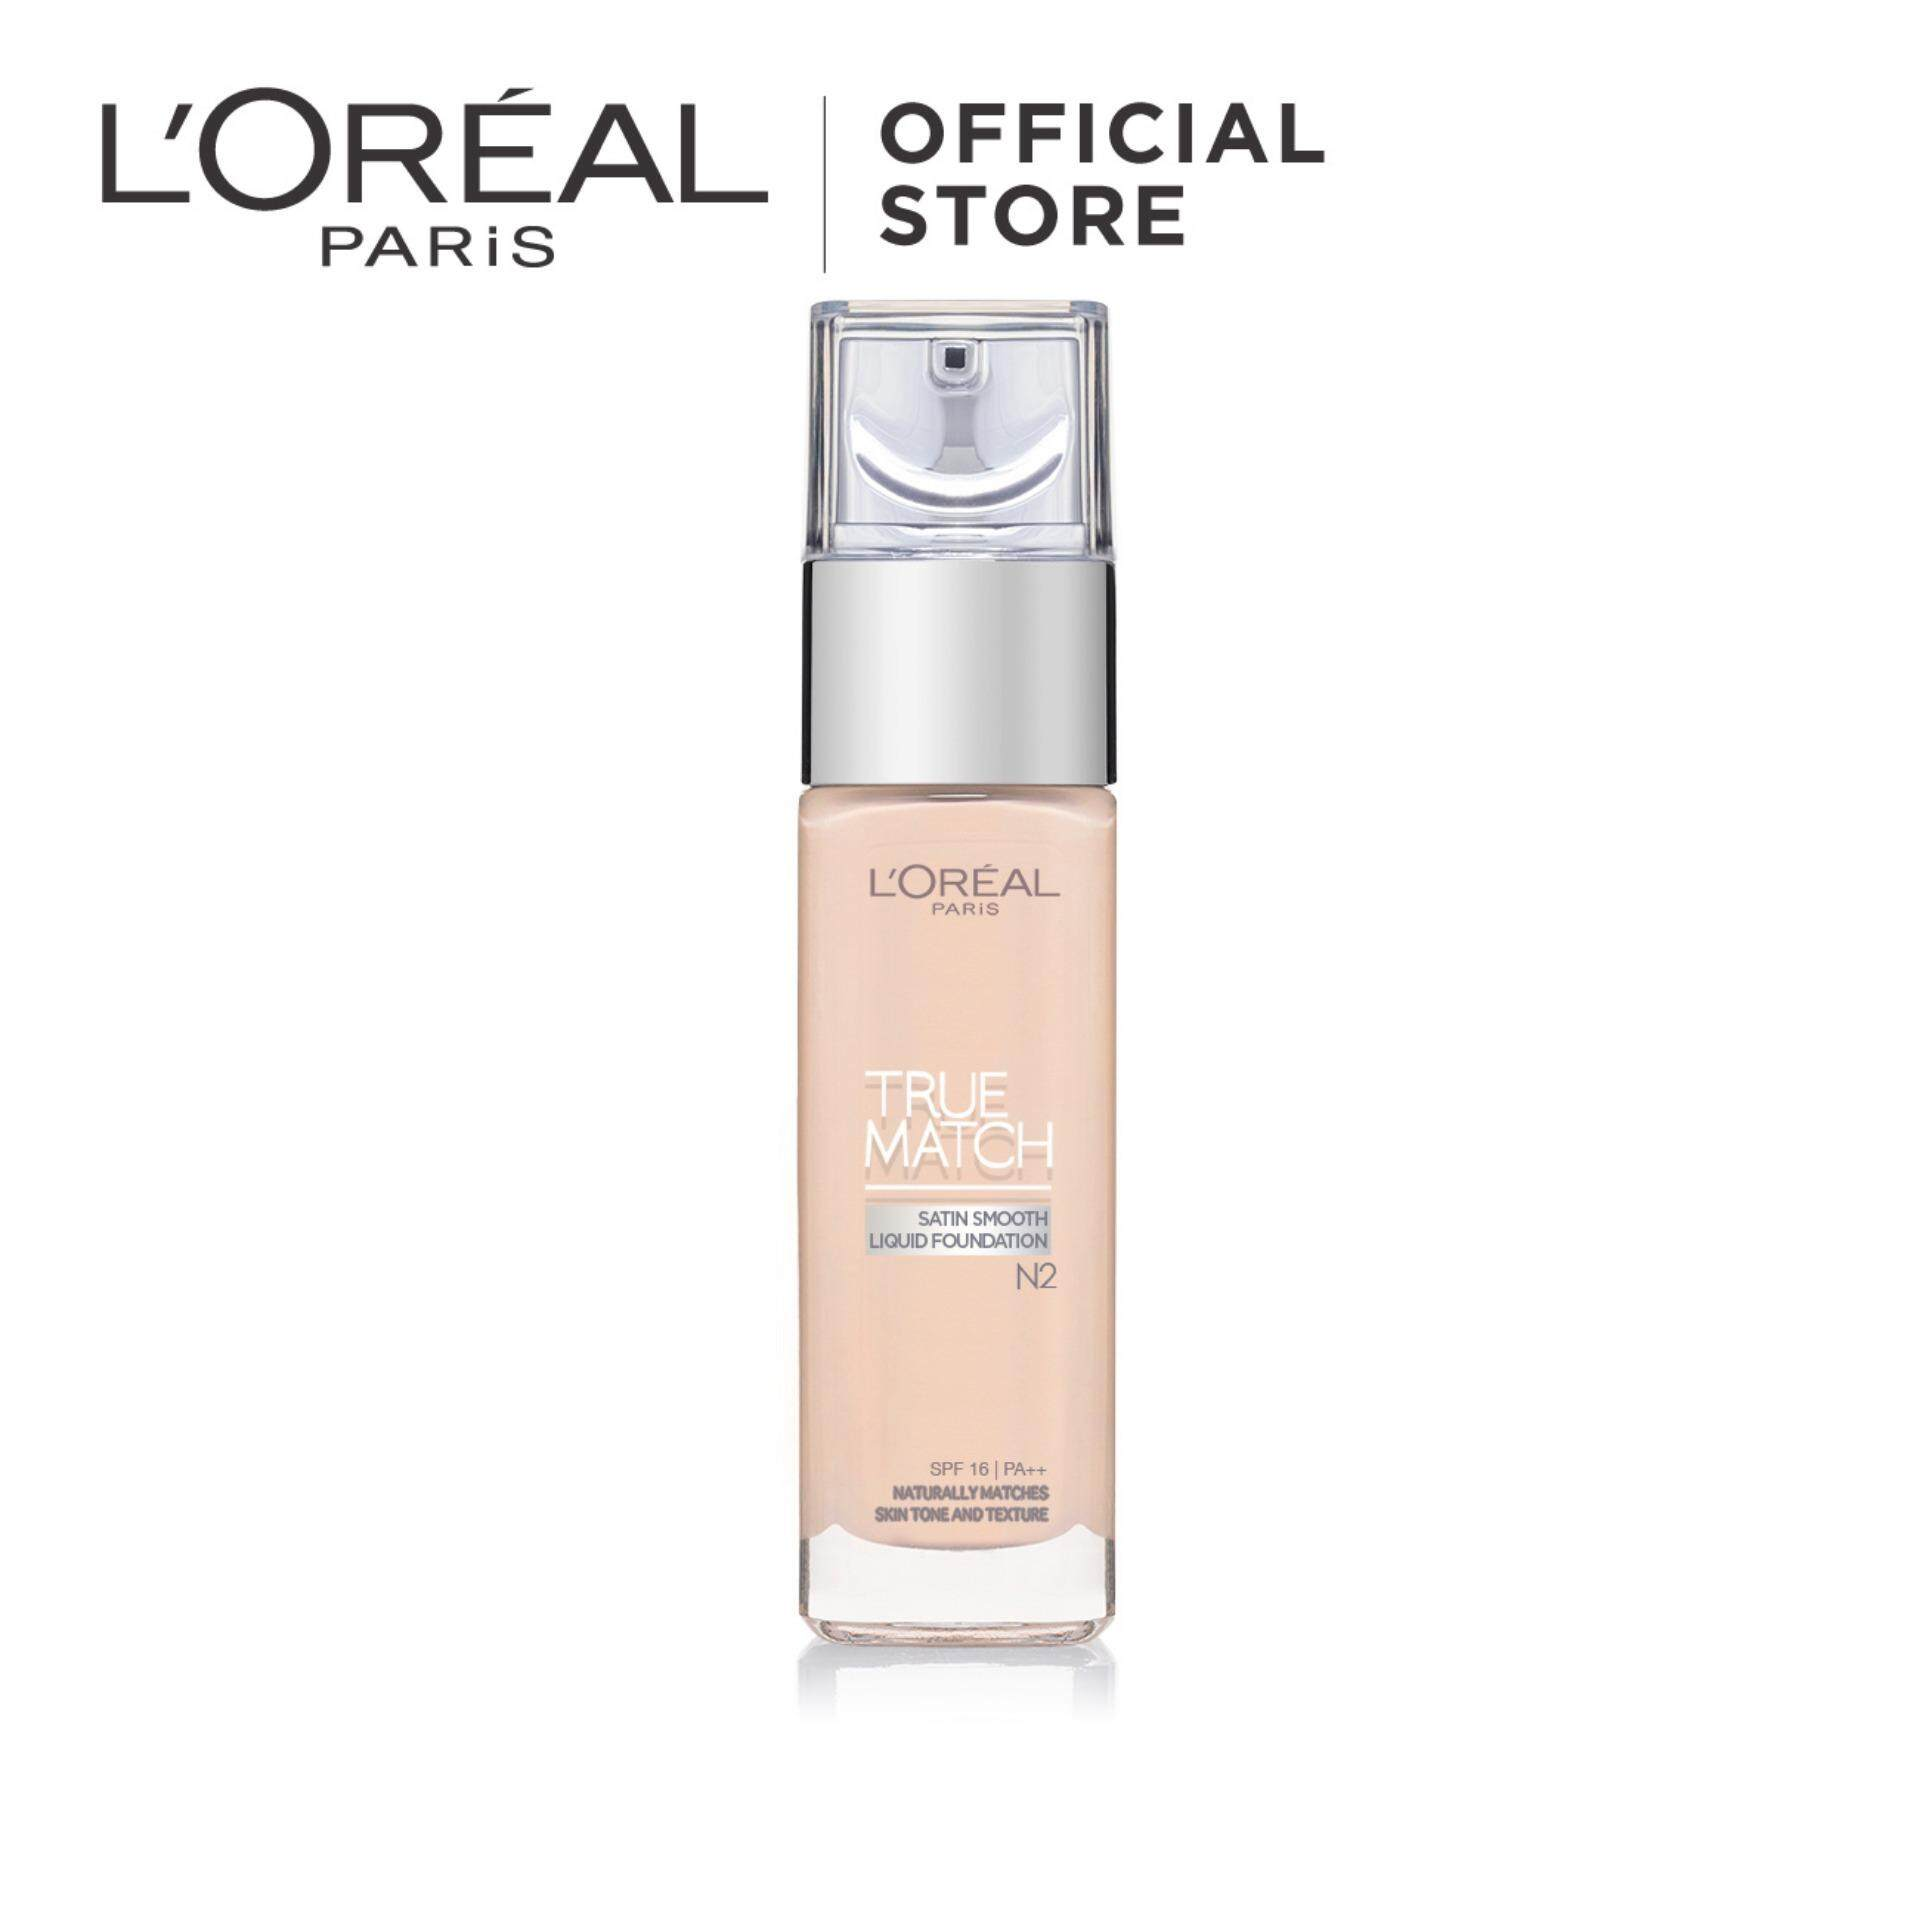 L Oreal Paris True Match Liquid Foundation SPF16